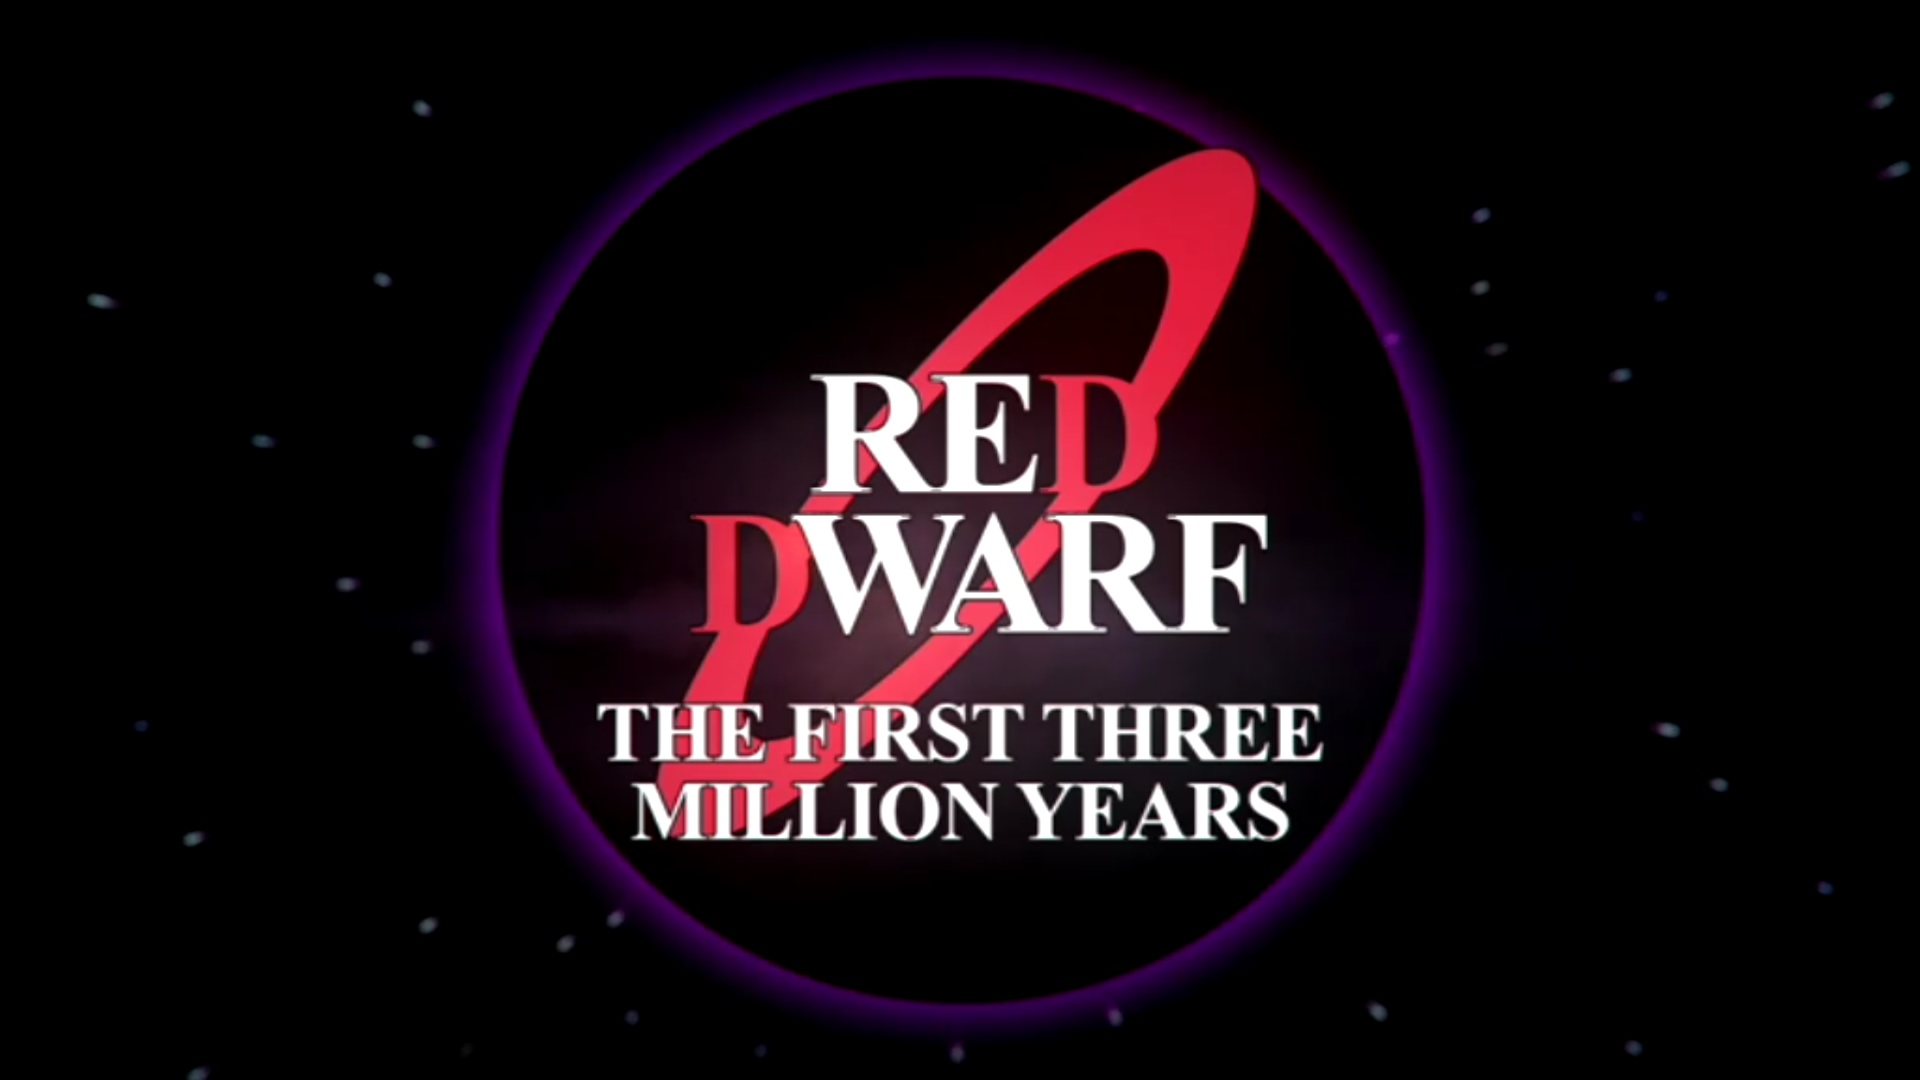 The First Three Million Years